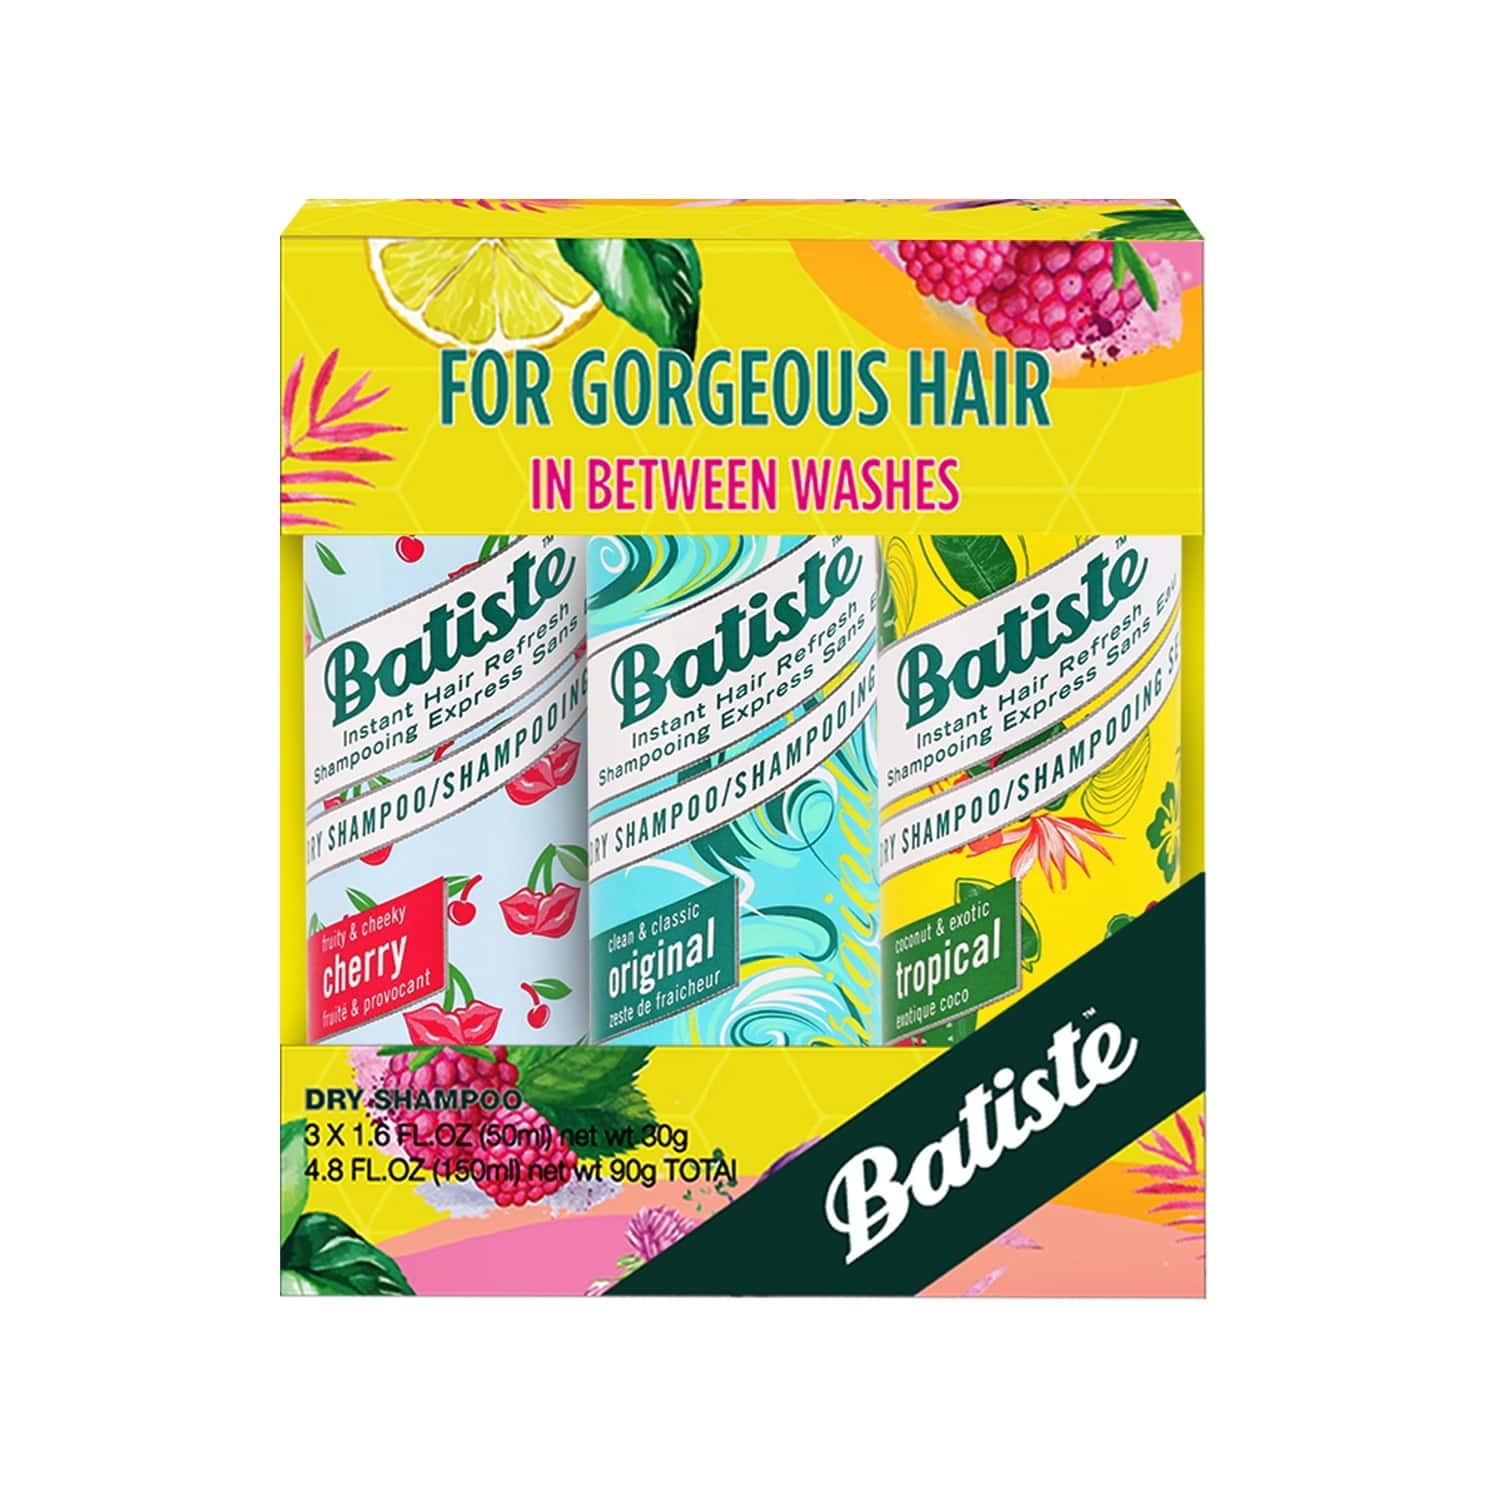 Batiste Fruity & Cheeky Cherry, Clean & Classic Original, Coconut & Exotic Tropical Dry Shampoo - 150ml (pack Of 3 X 50ml)